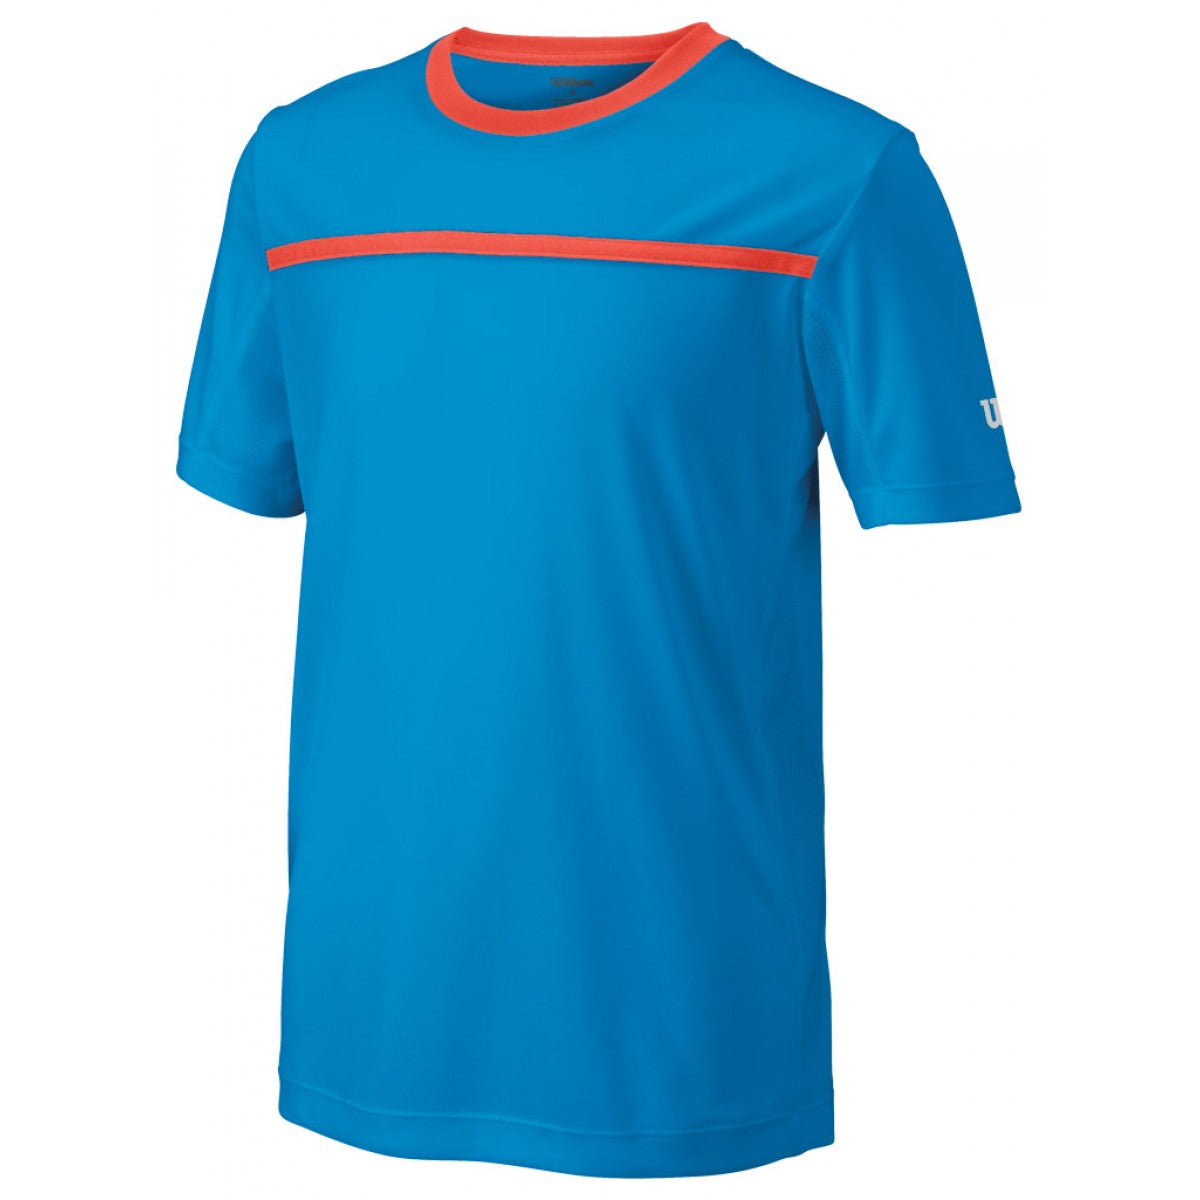 Wilson Junior Tennis T-shirt